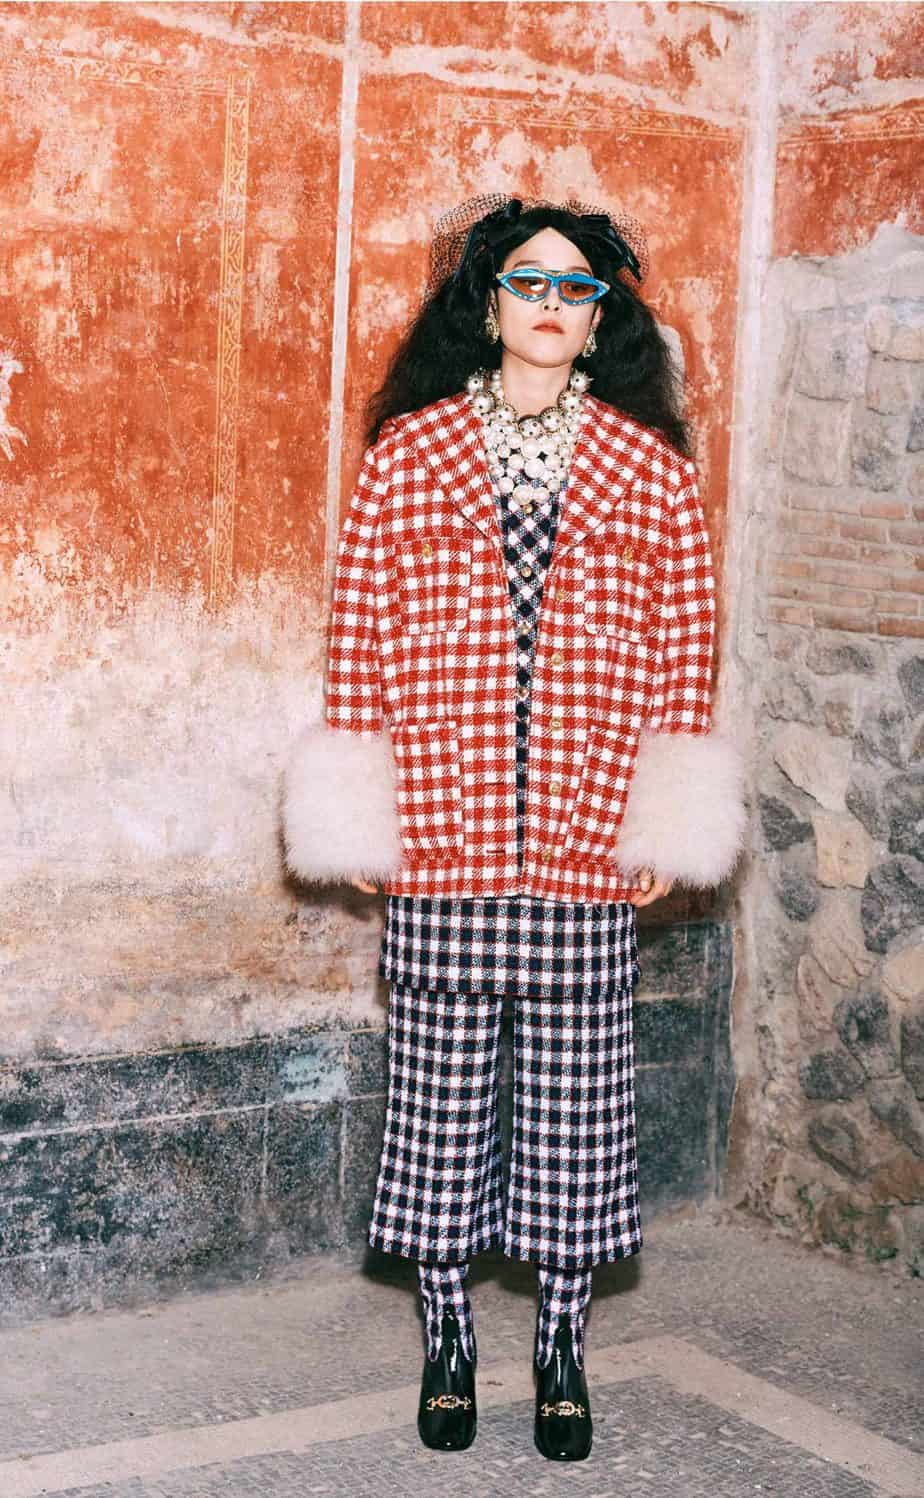 GUCCI, FALL 2019. WOMEN'S FASHION, Photographer Harmony Korine, Art Director, Christopher Simmonds - 91